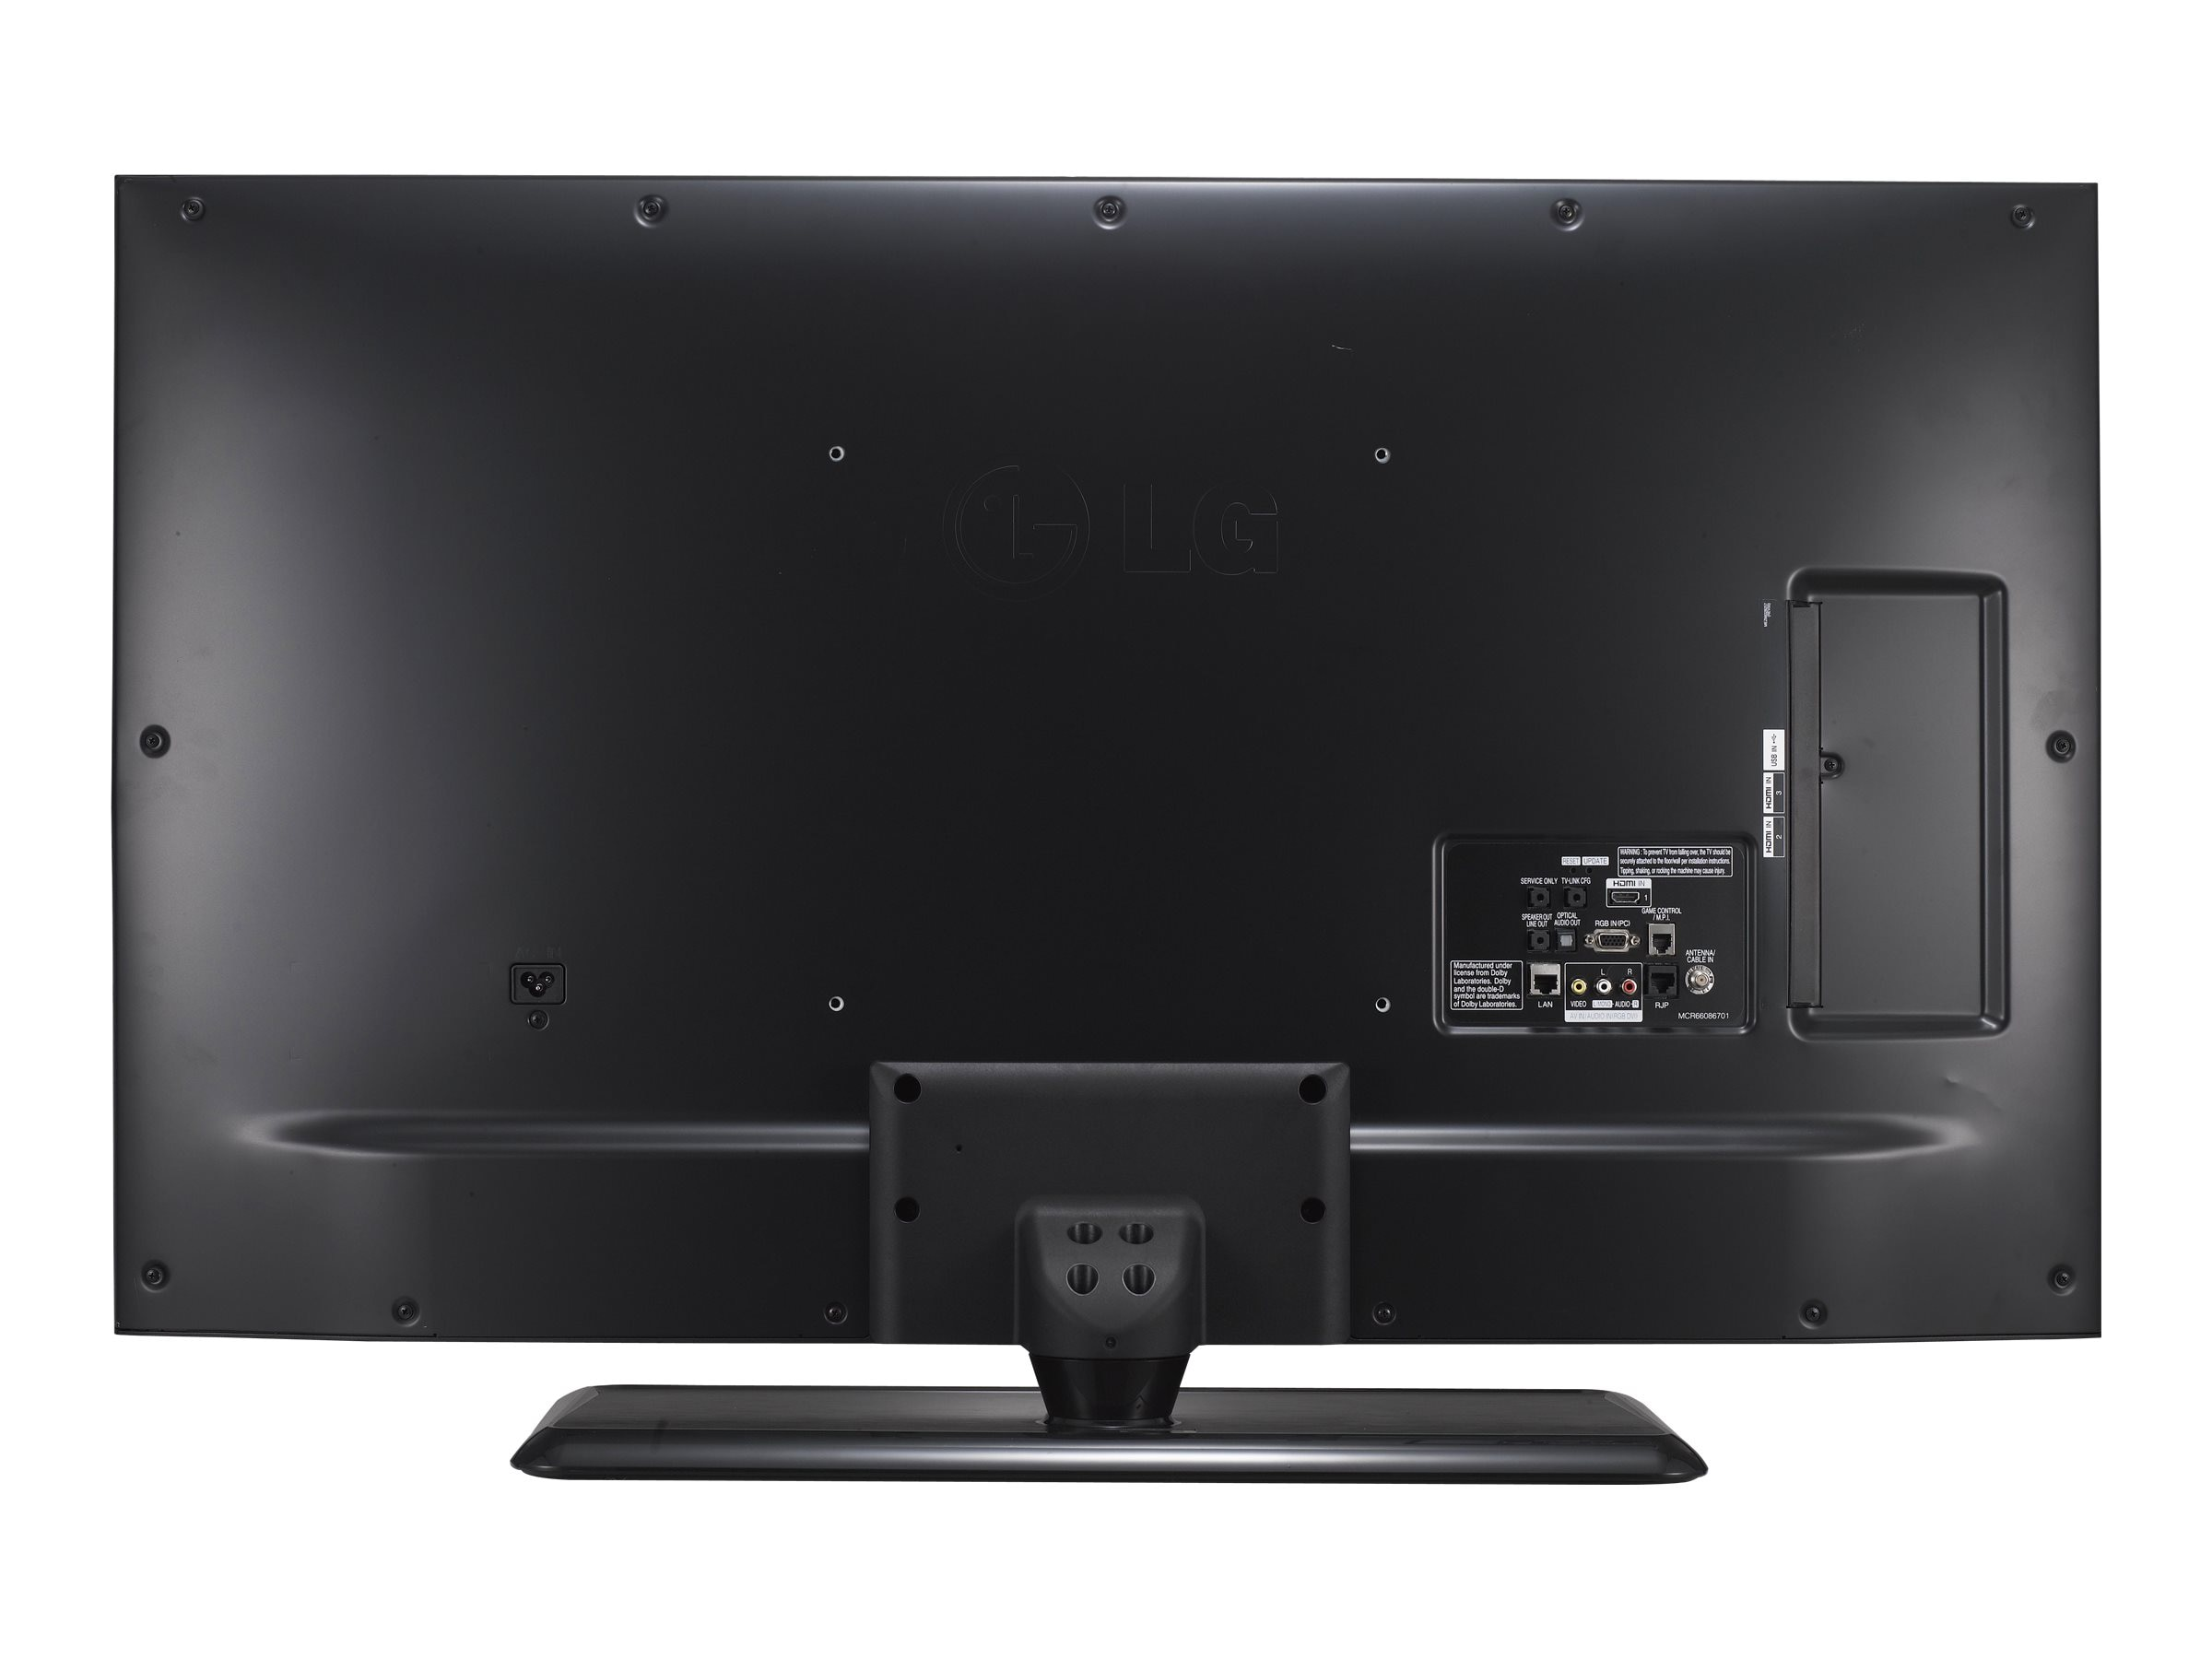 LG 48.5 LX560H Full HD LED-LCD Hospitality TV, Black, 49LX560H